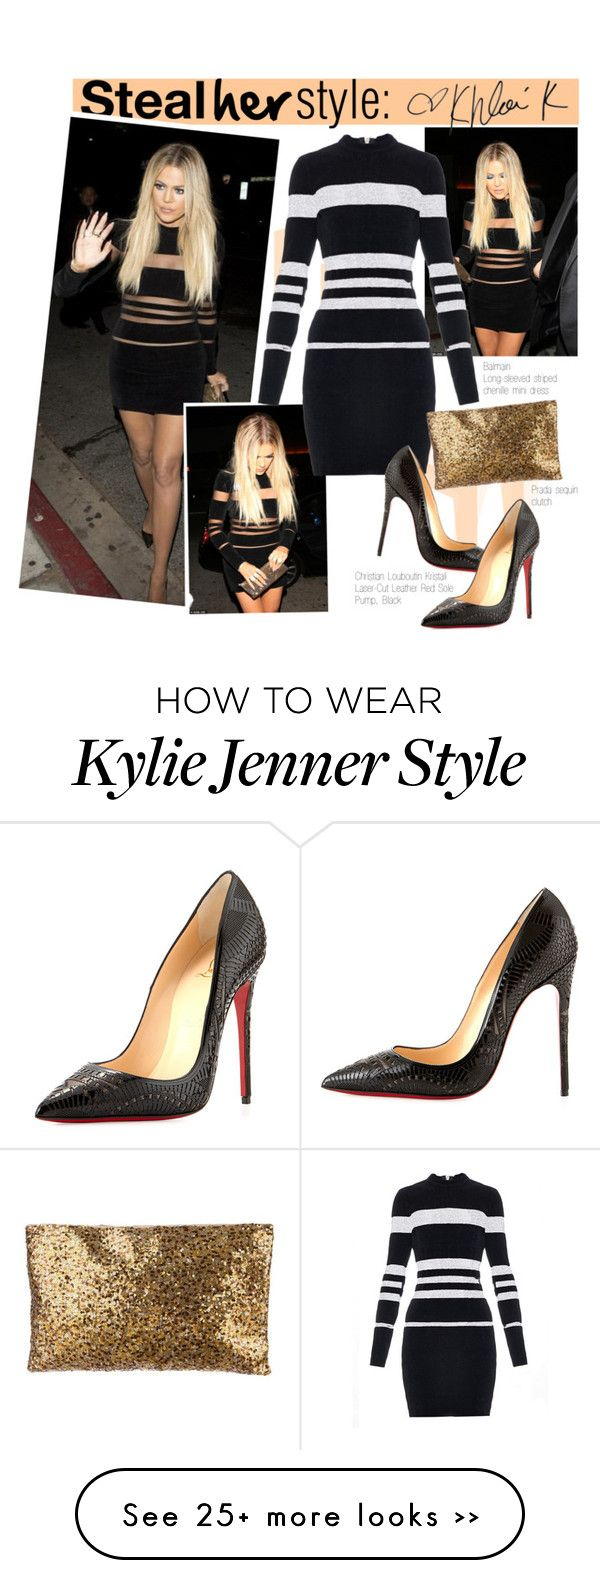 Khloe Kardashian At Kylie Jenner 18th Bday Party By Georginamaybrown On Polyvore Outfits